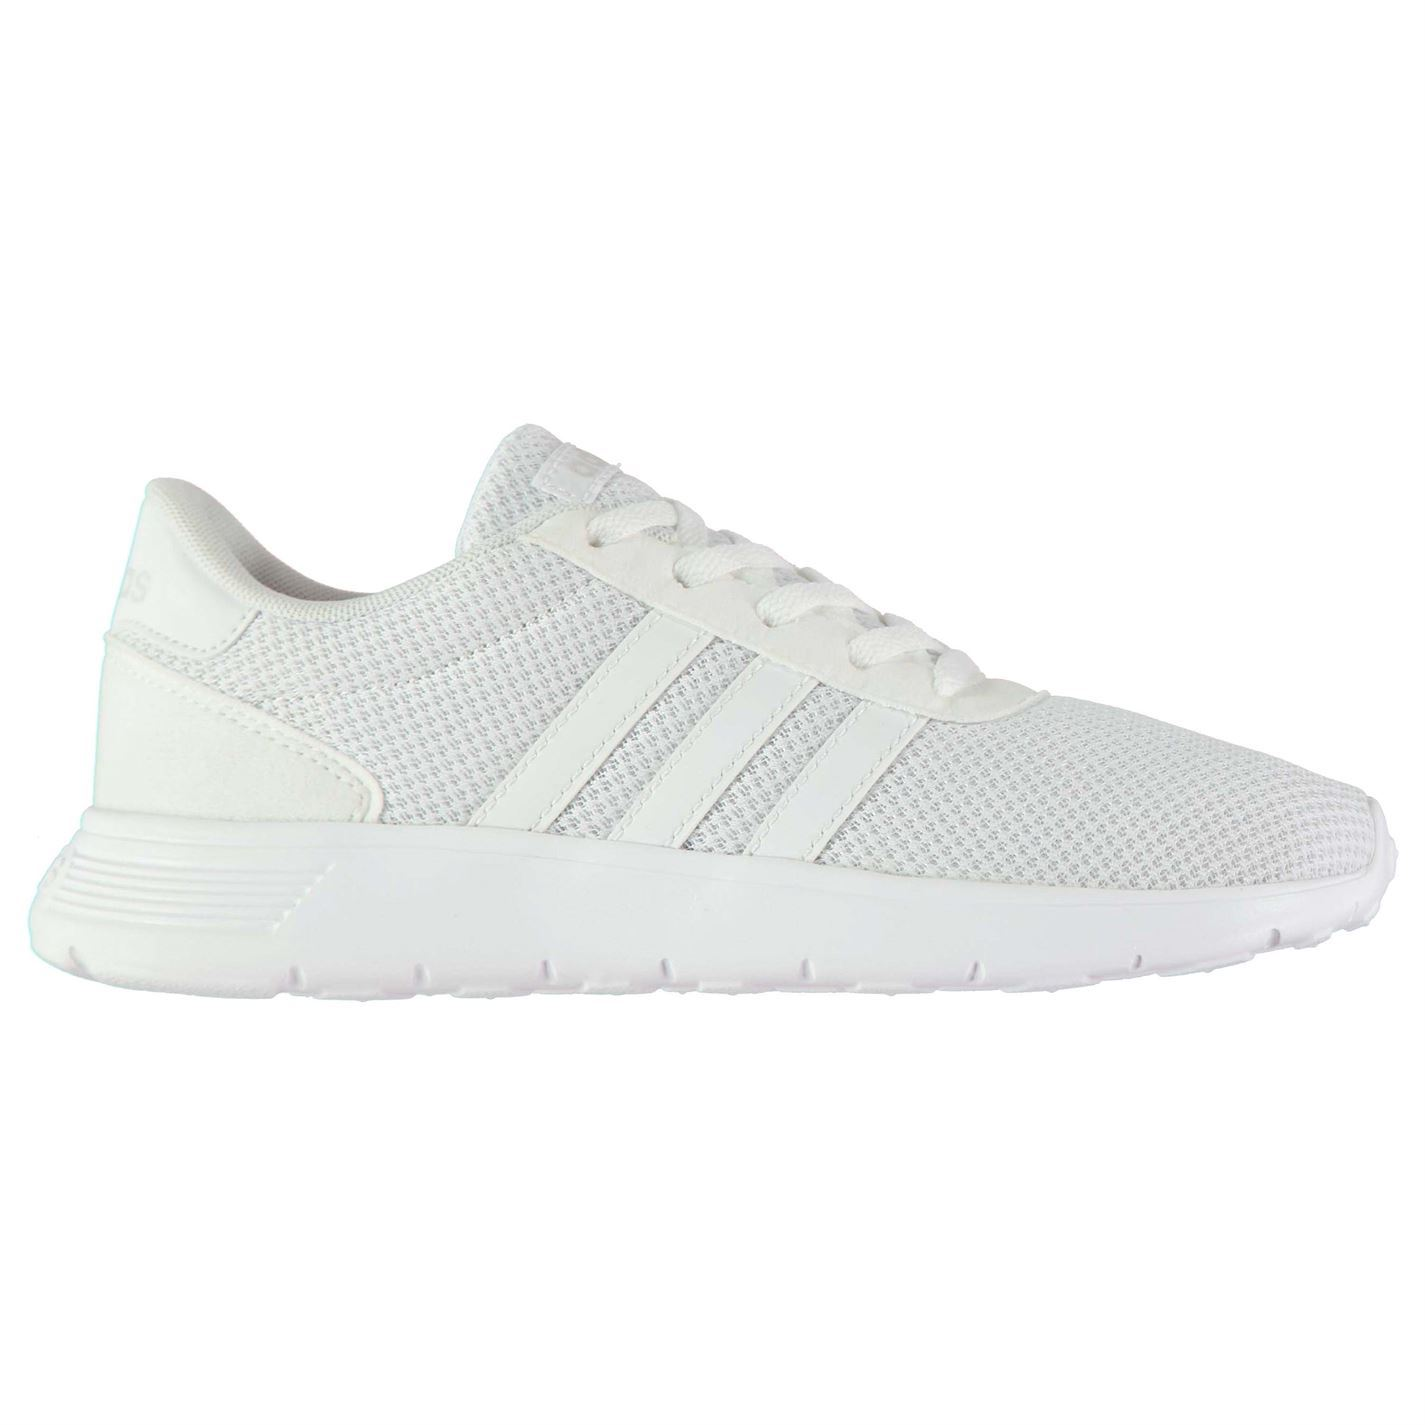 adidas youth trainers